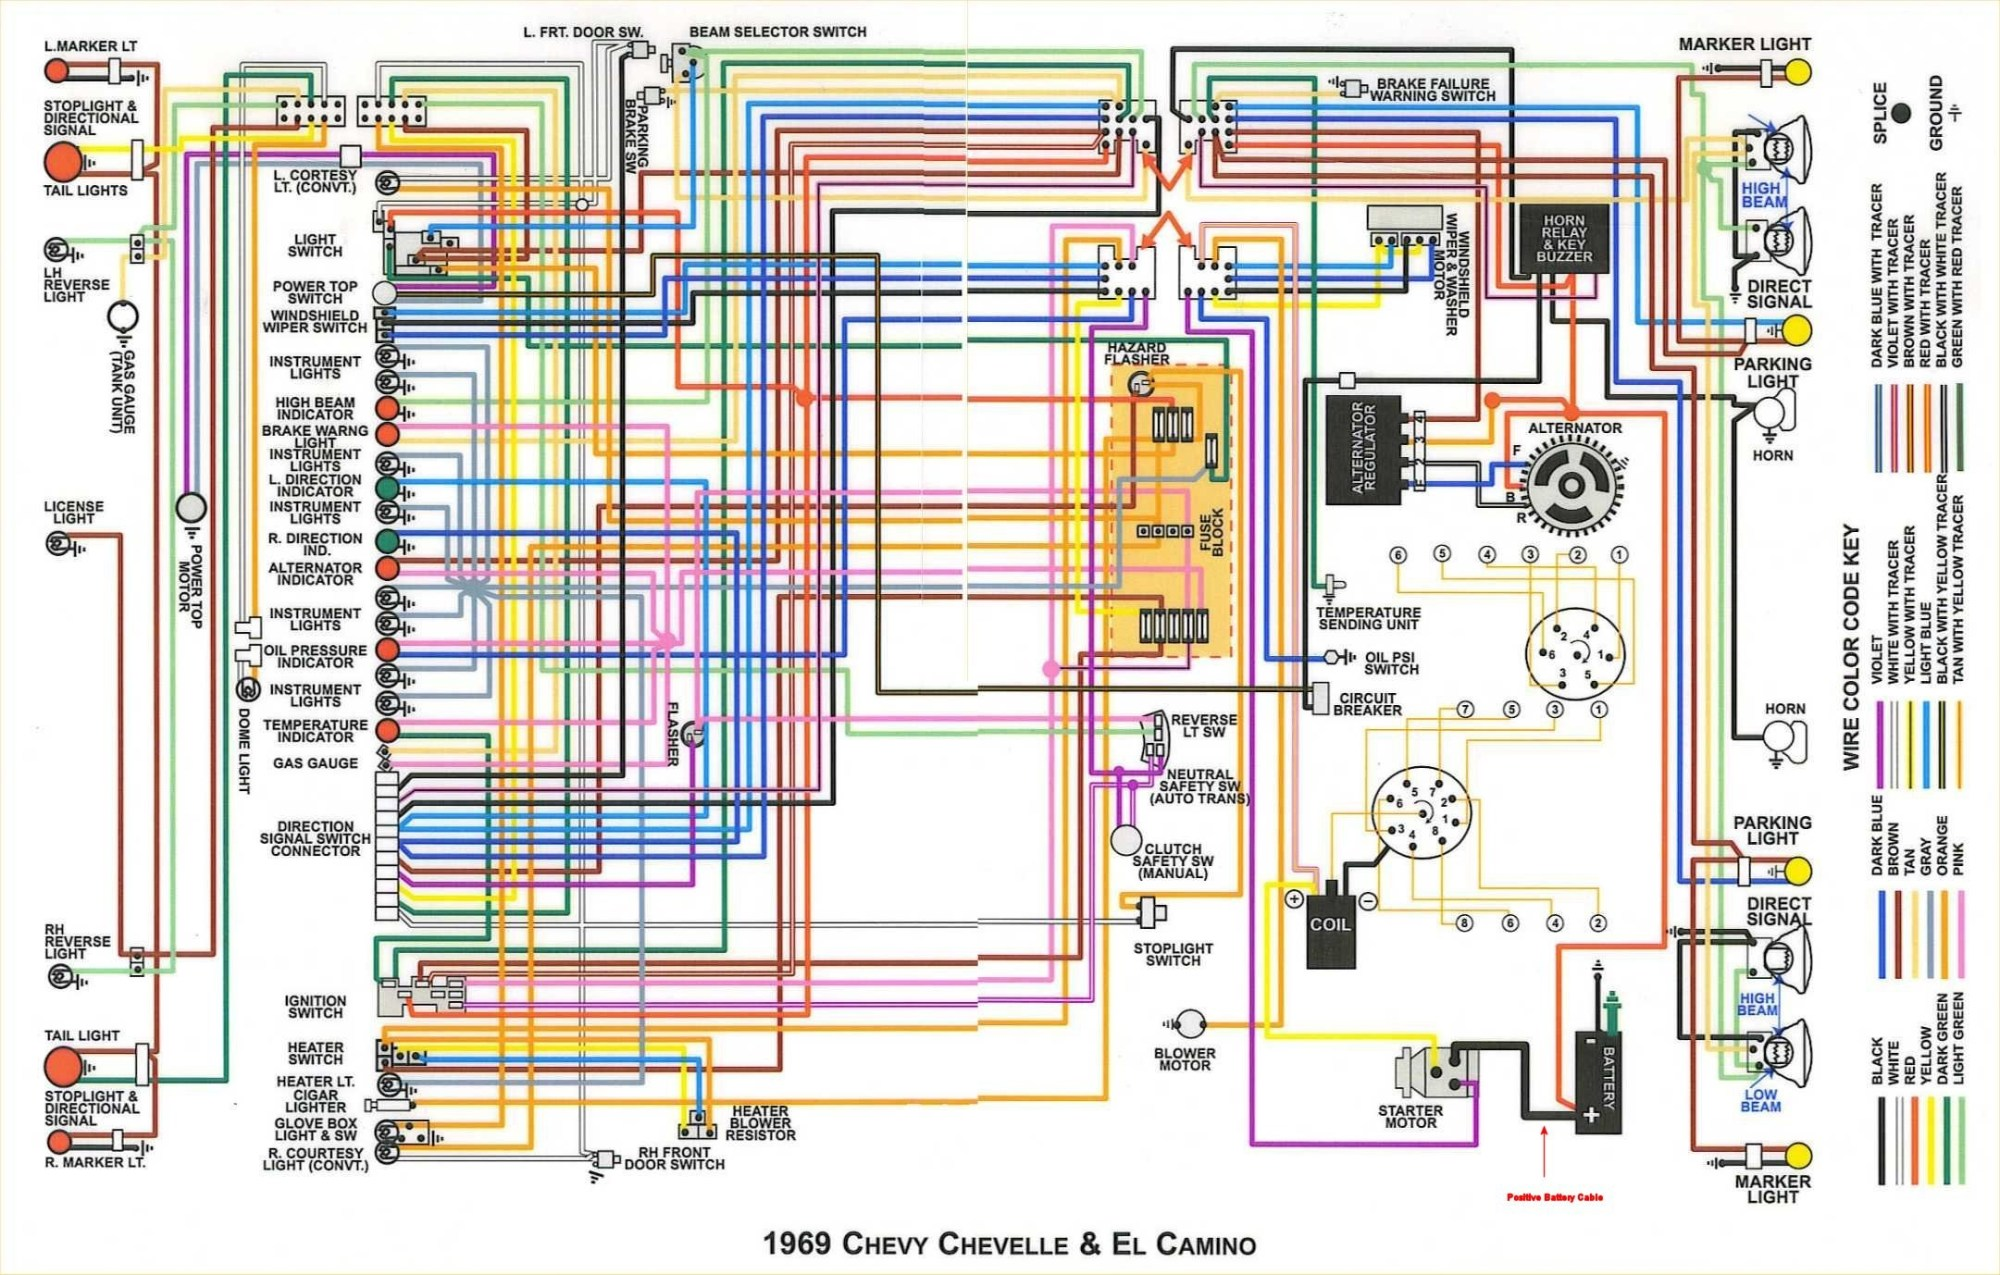 hight resolution of wiring diagram on 1970 chevelle wiring harness diagram download wiring diagram for 68 chevelle free download